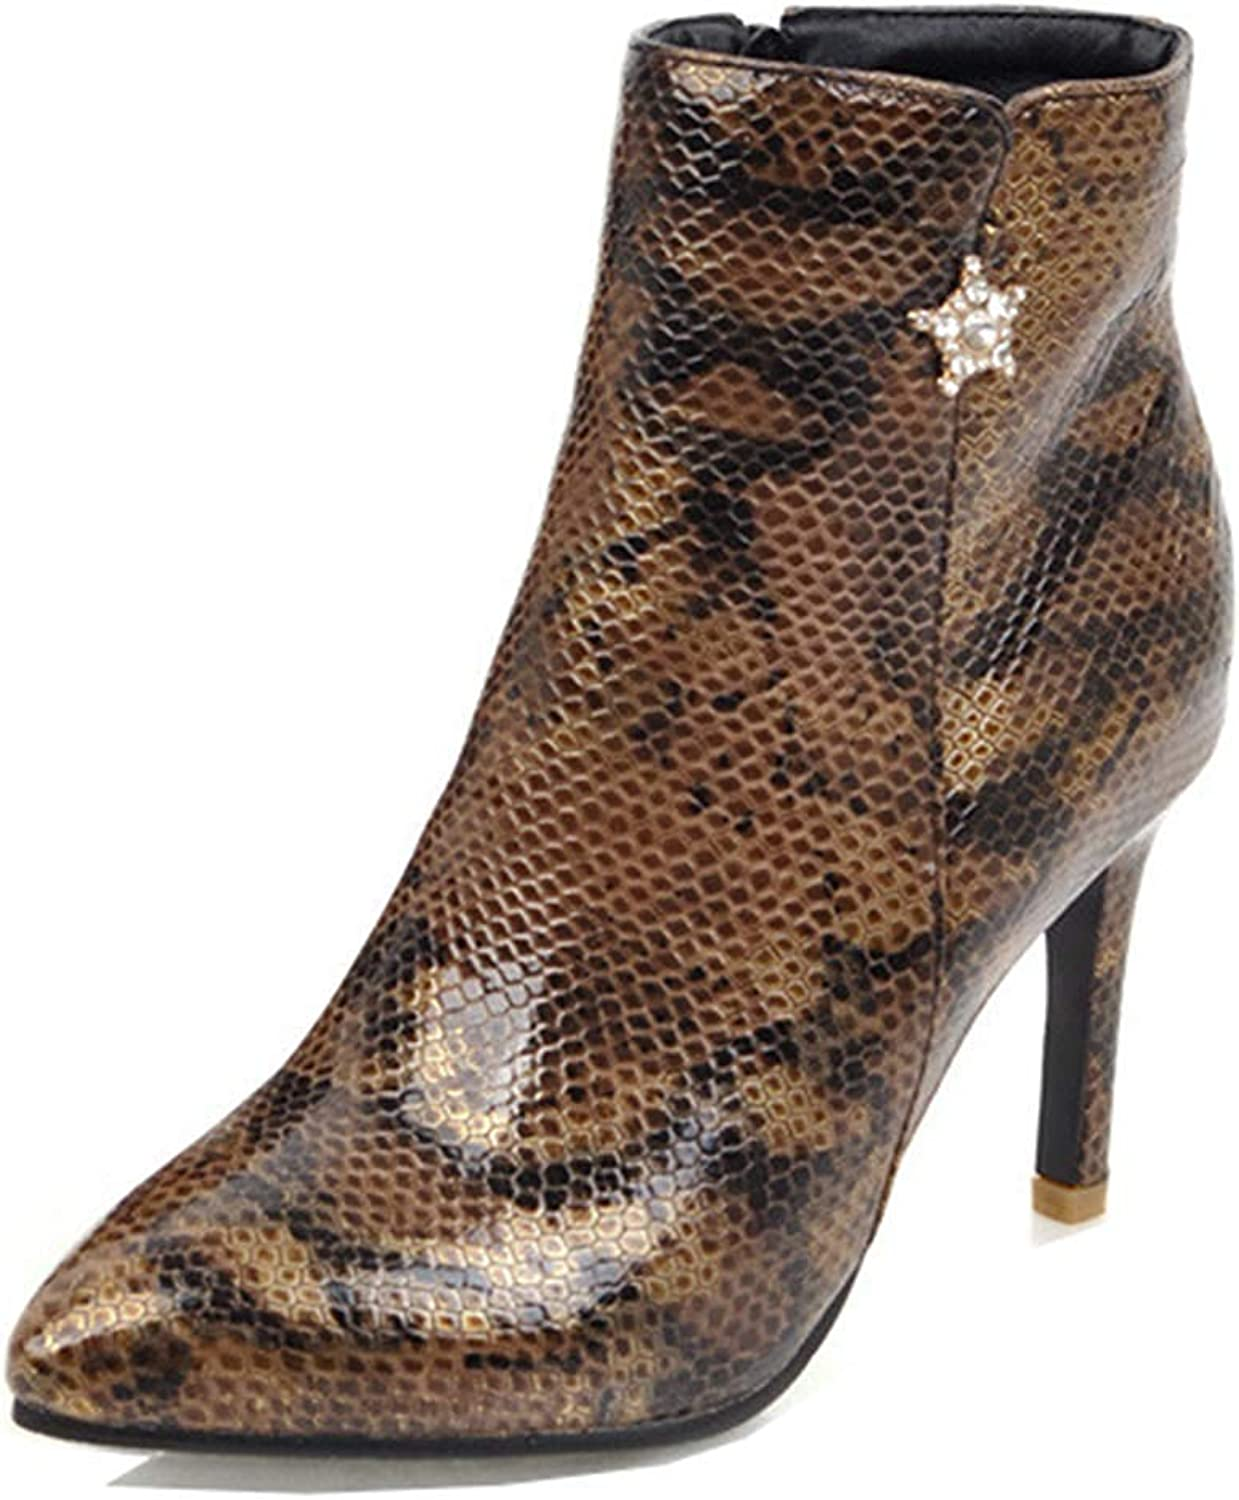 Unm Women's Sexy Snake Print Inside Zip Up Pointy Toe Dress Booties Stiletto High Heel Ankle Boots